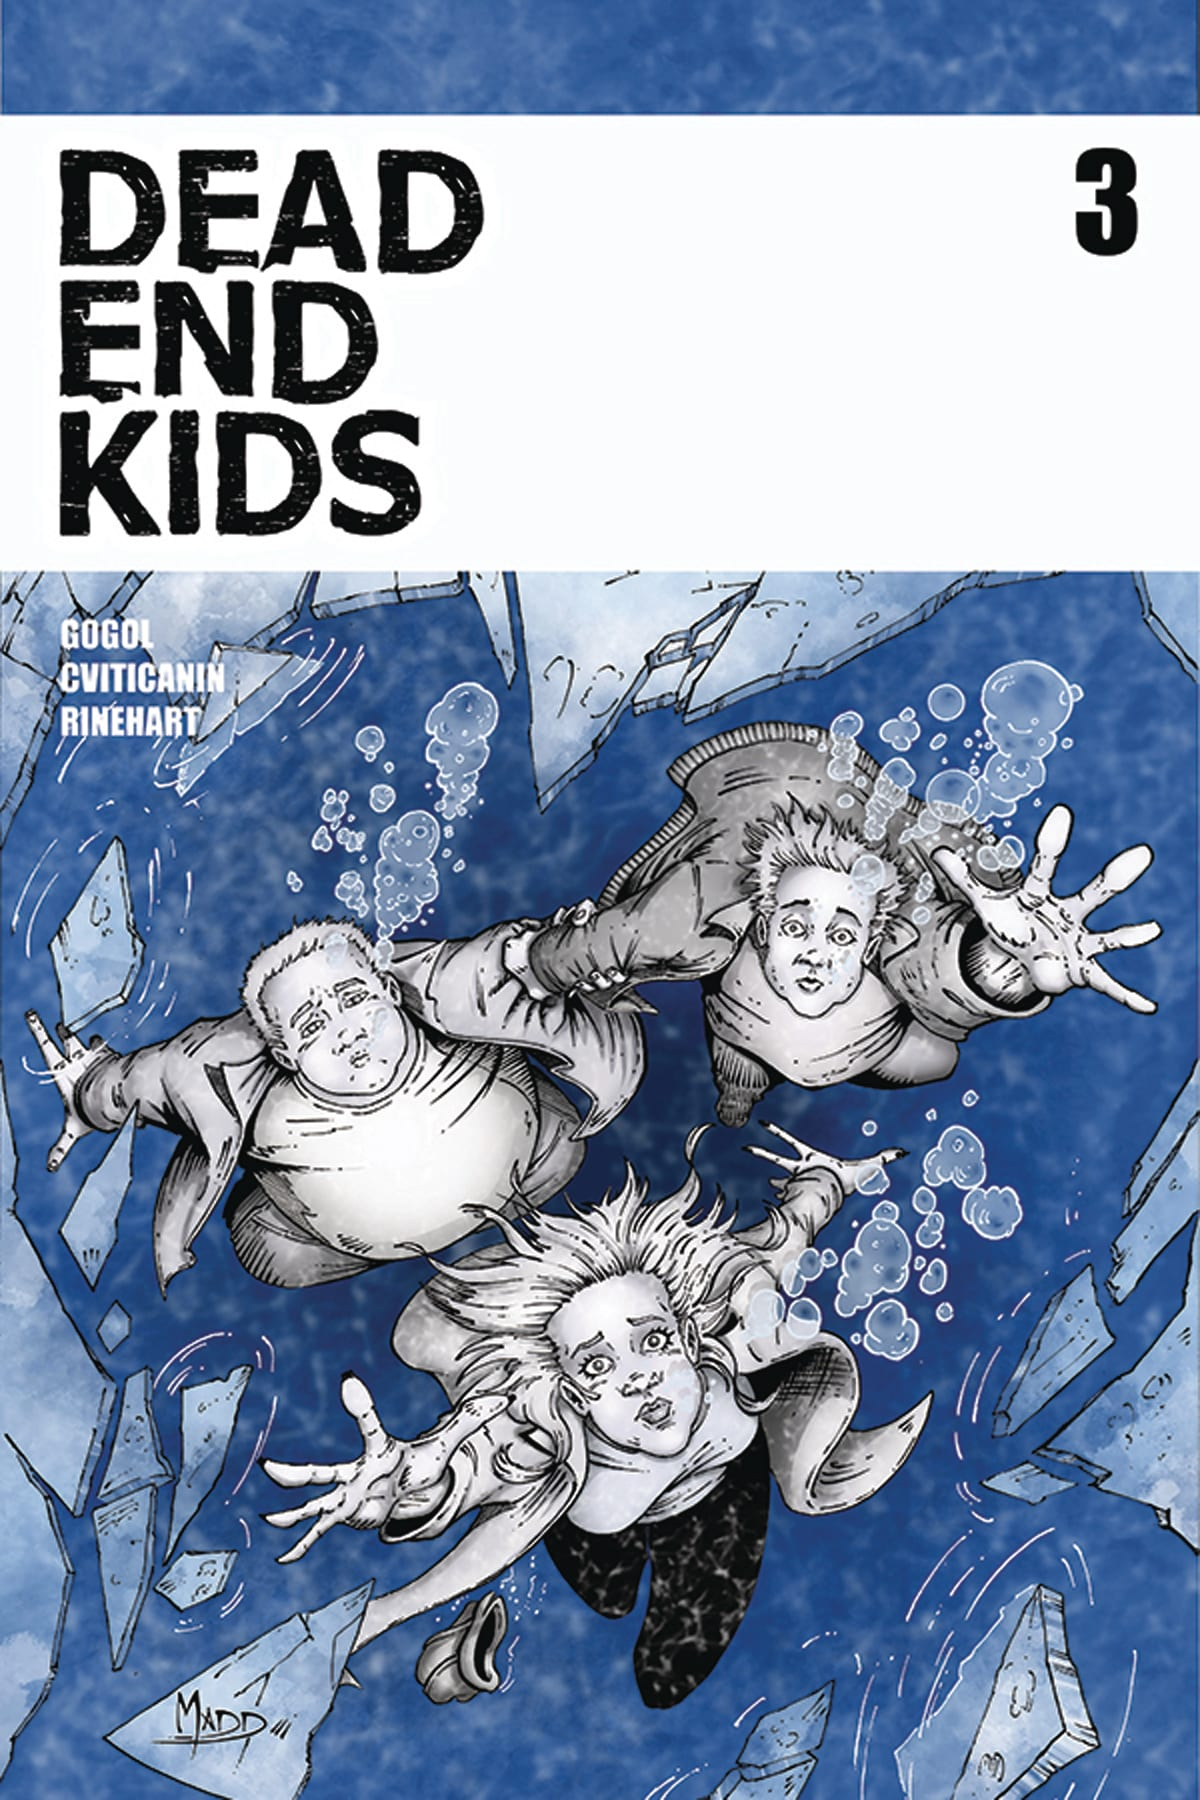 Review: DEAD END KIDS #3 Will Leave You Needing Tissues 1